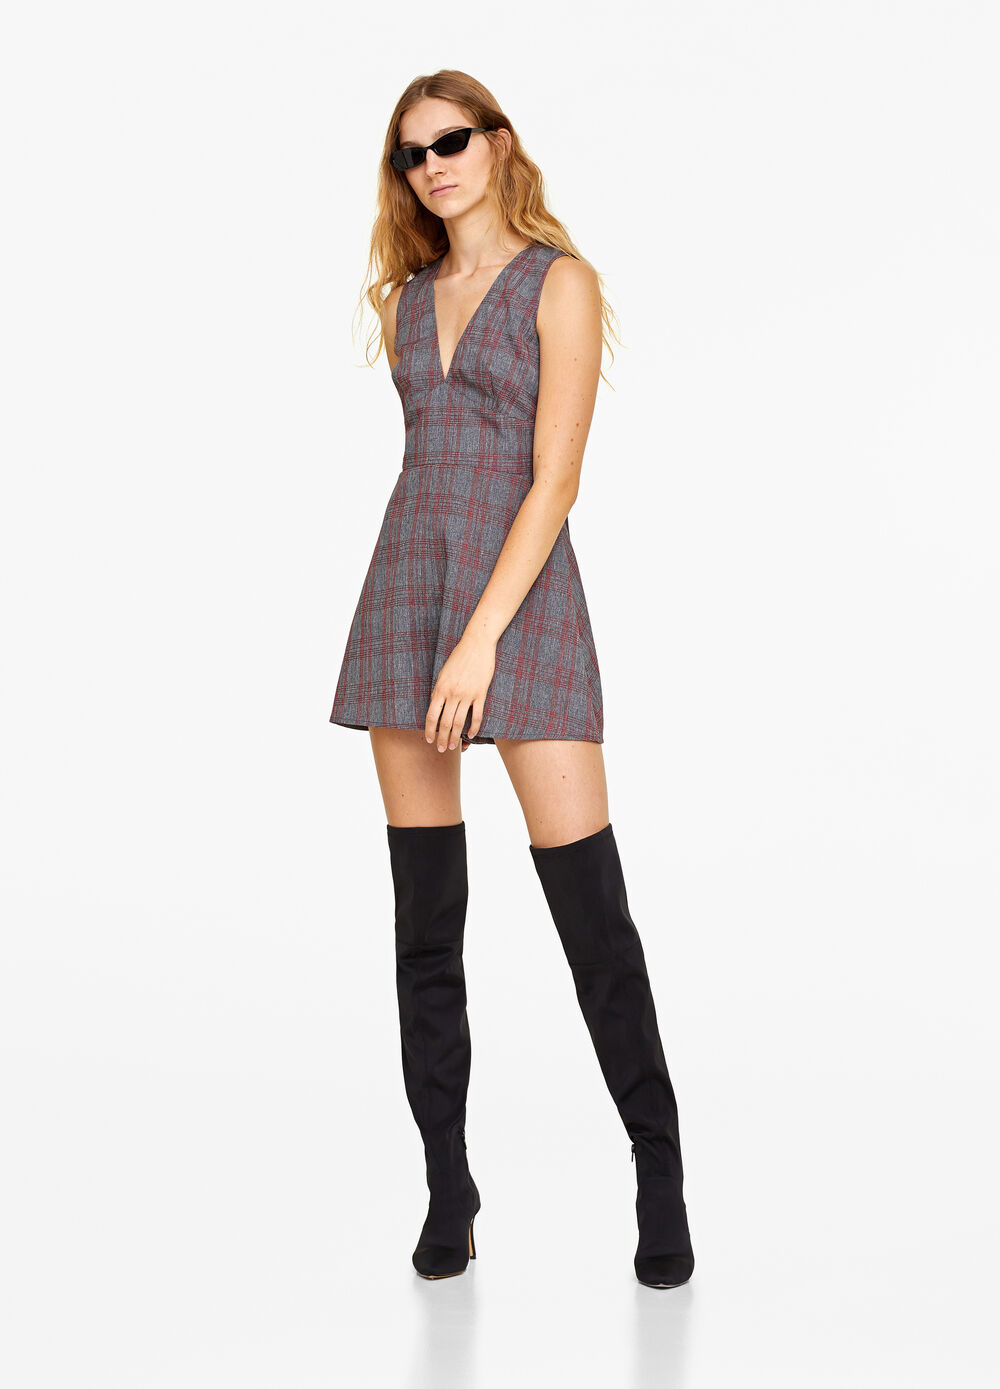 V-neck bodysuit with check pattern